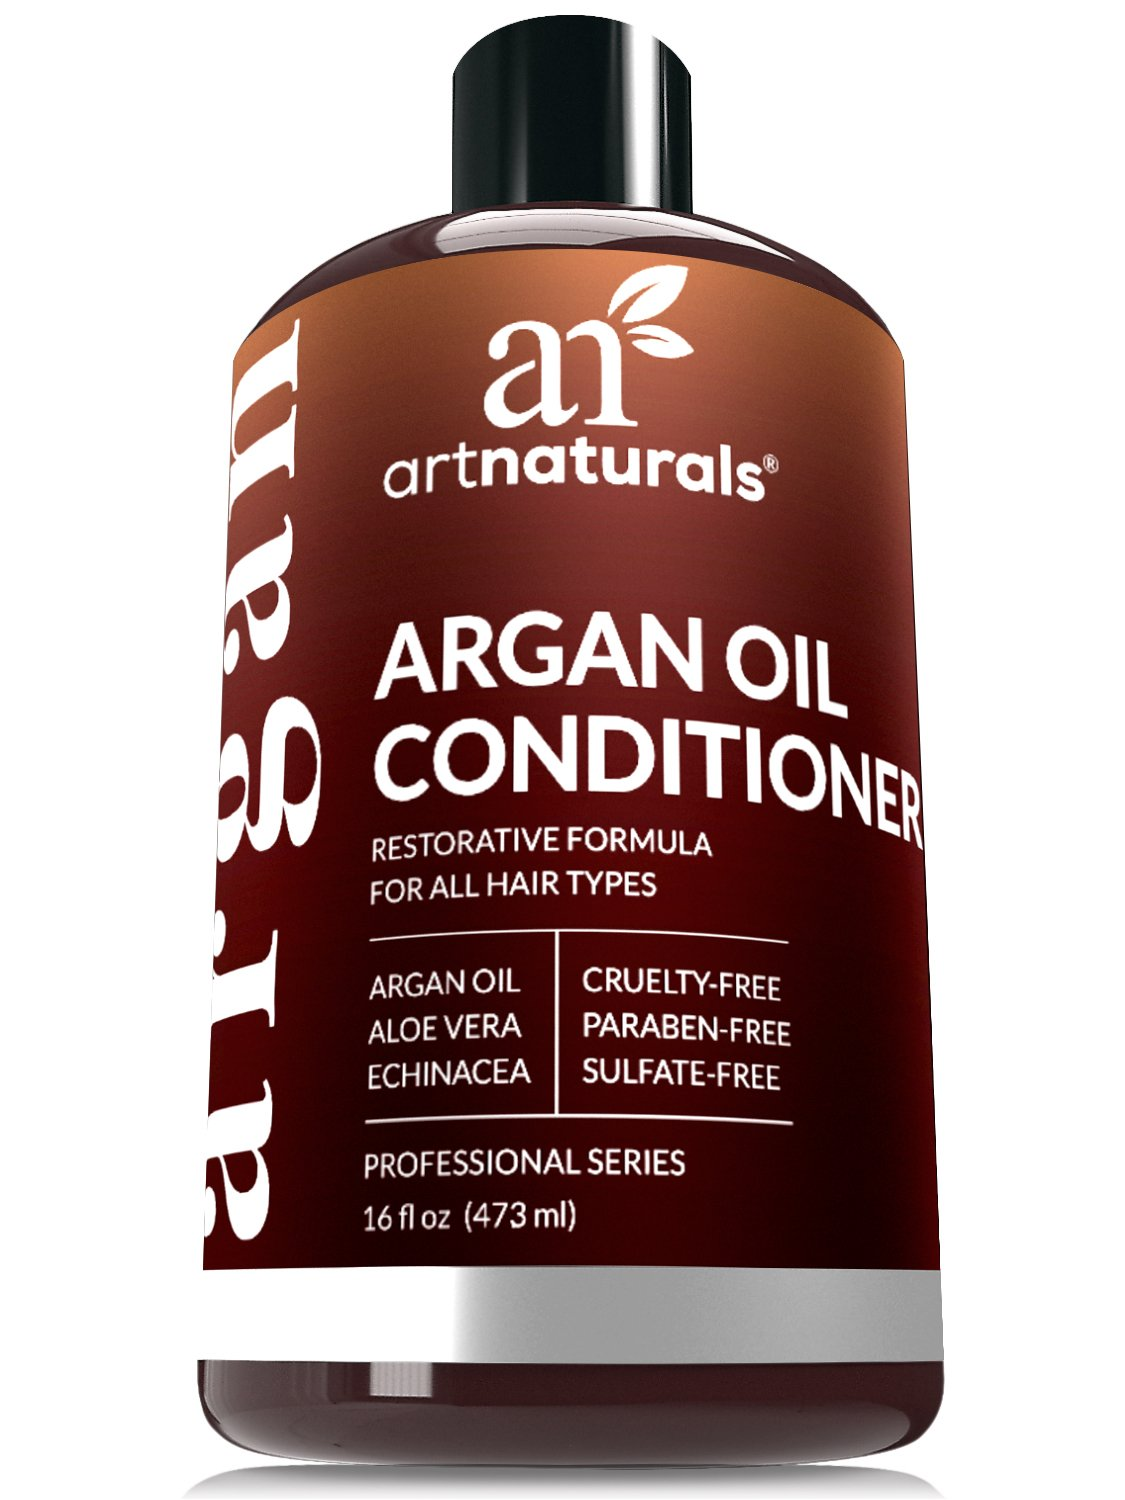 Outlet Artnaturals Argan Oil Hair Conditioner 16 Oz Sulfate Free